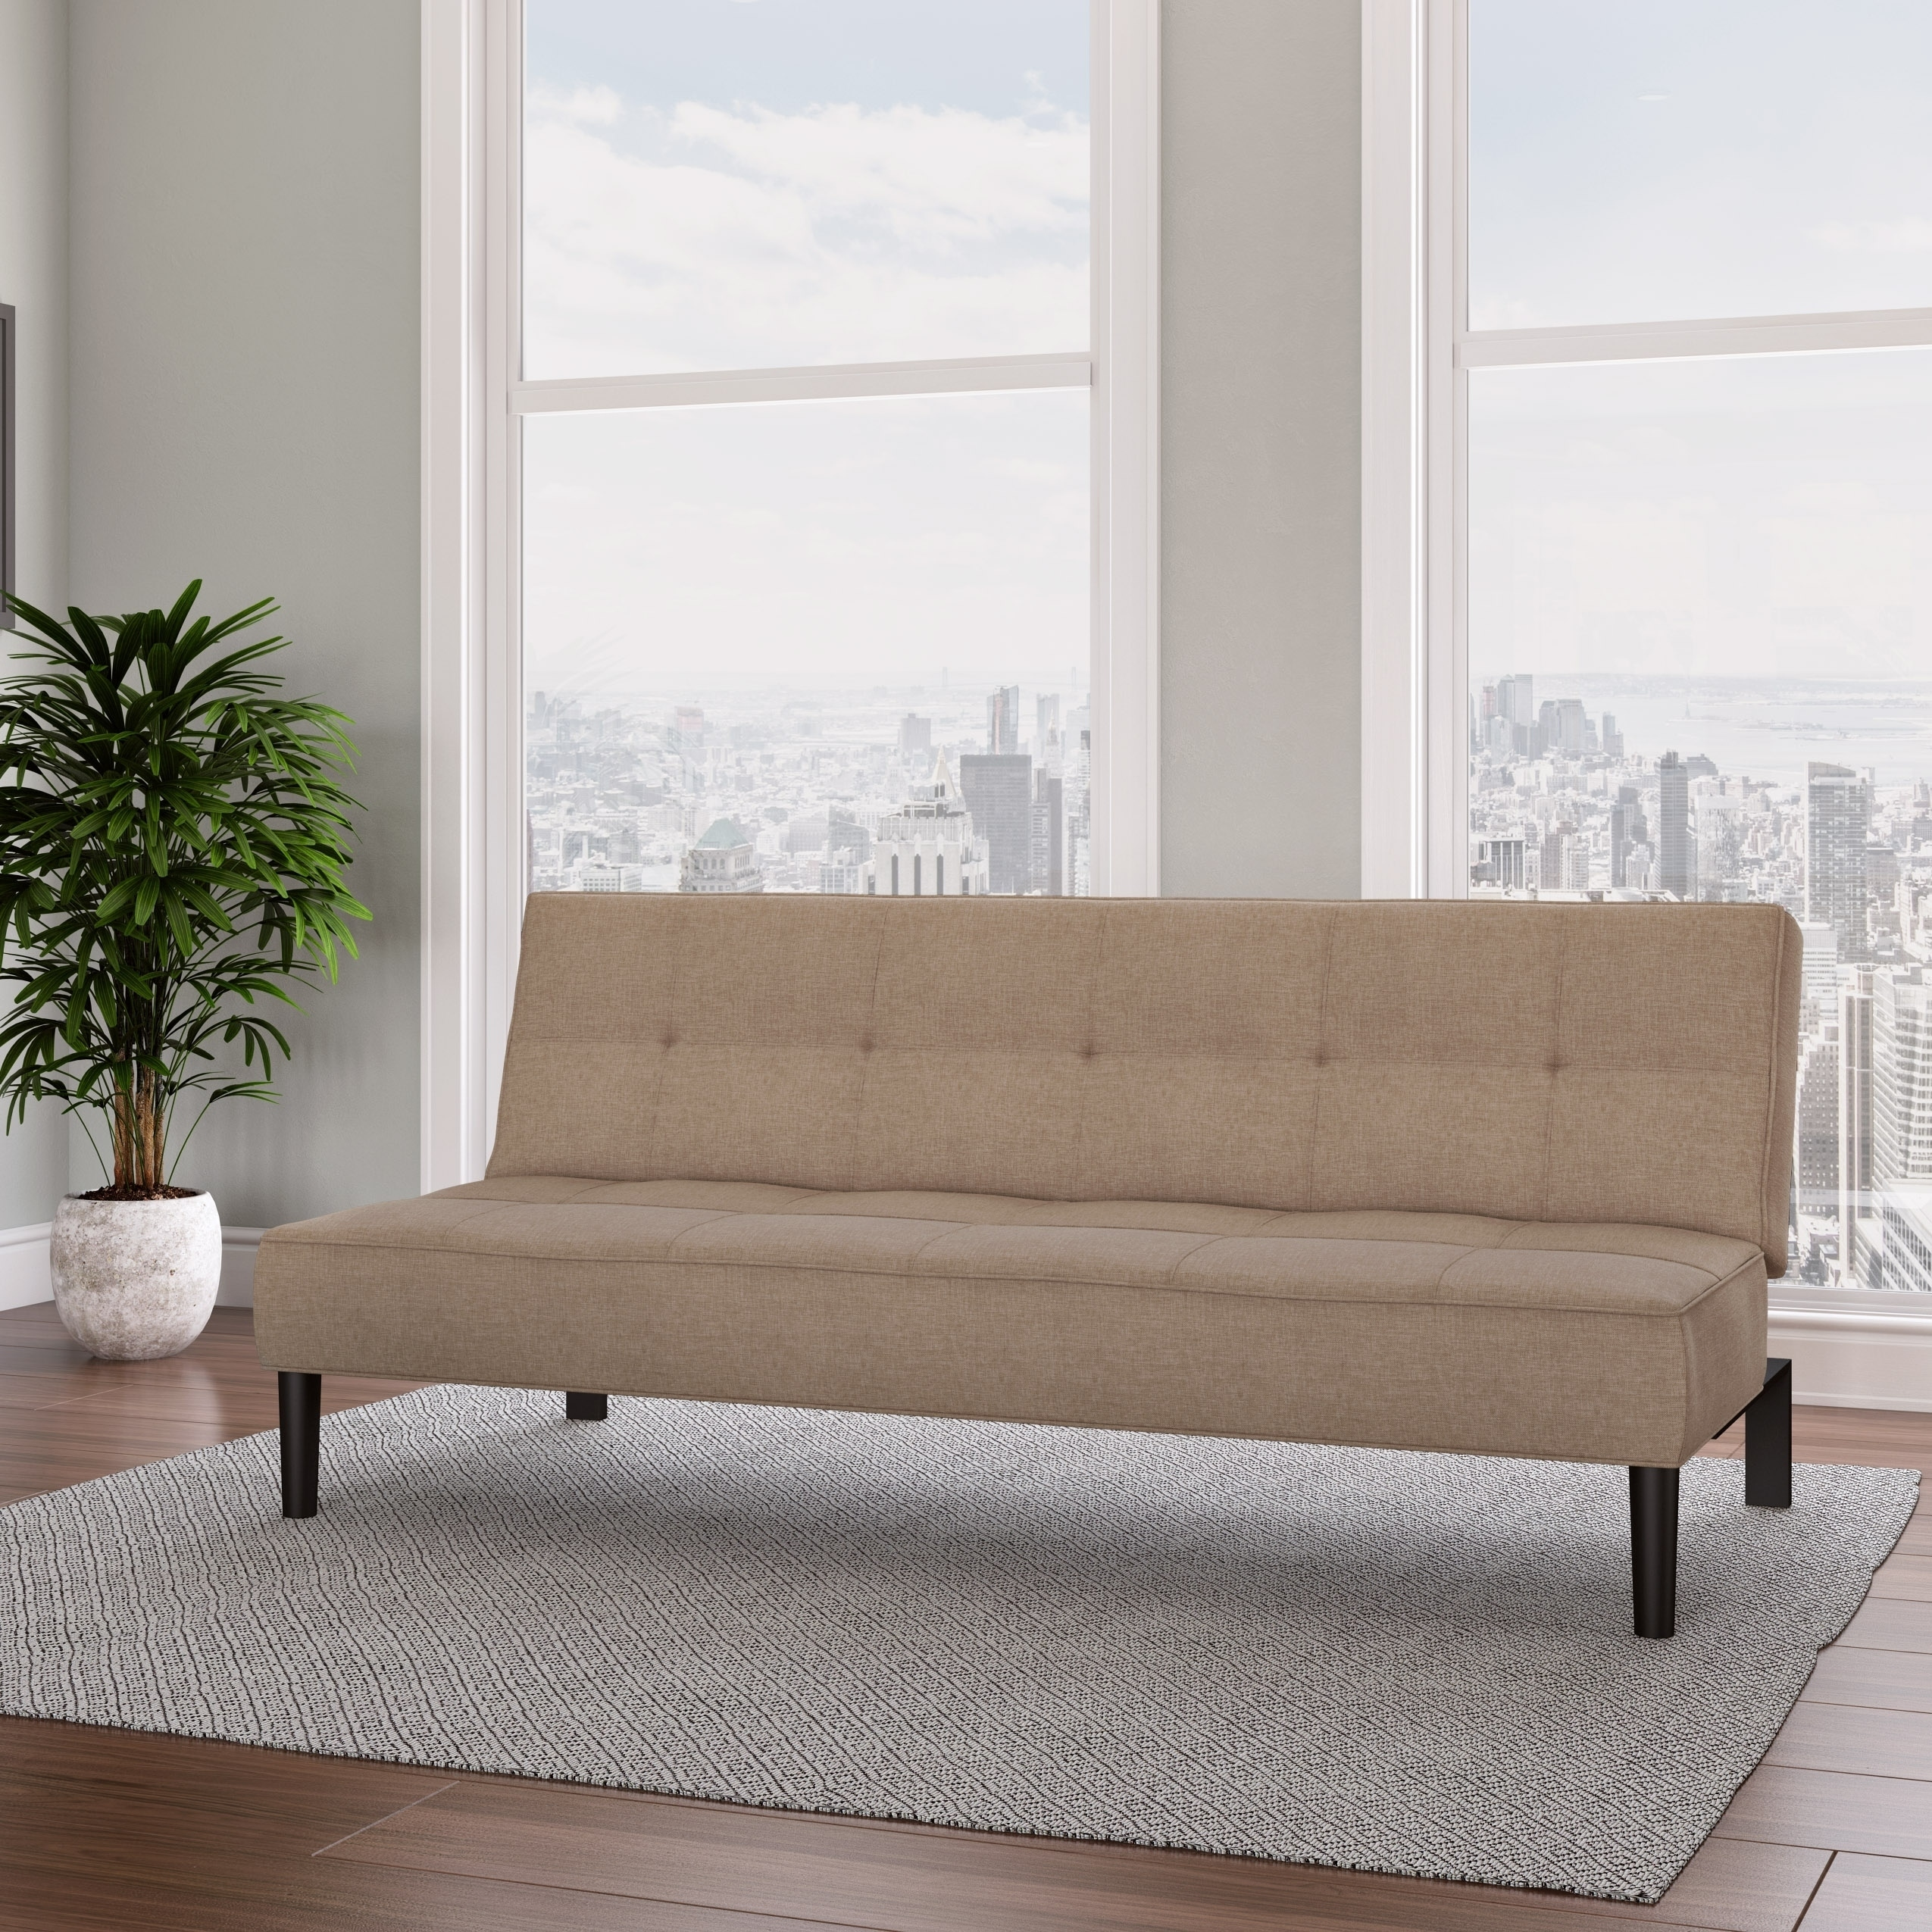 Corliving Convertible Futon Sofa Bed With Textured Mattress  Free